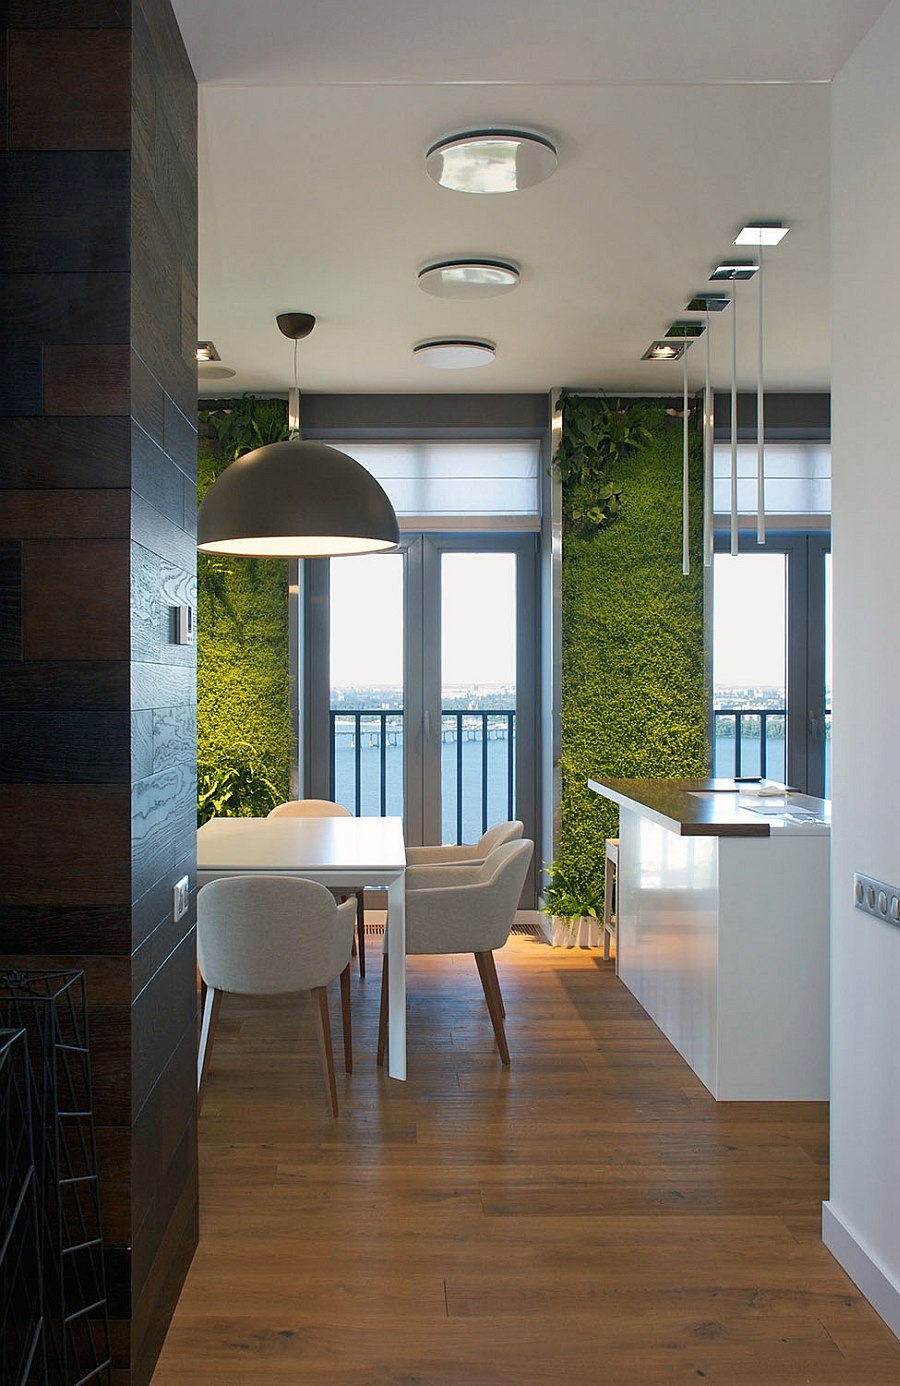 Accent lighting lits up the vetical wall gardens in the living room